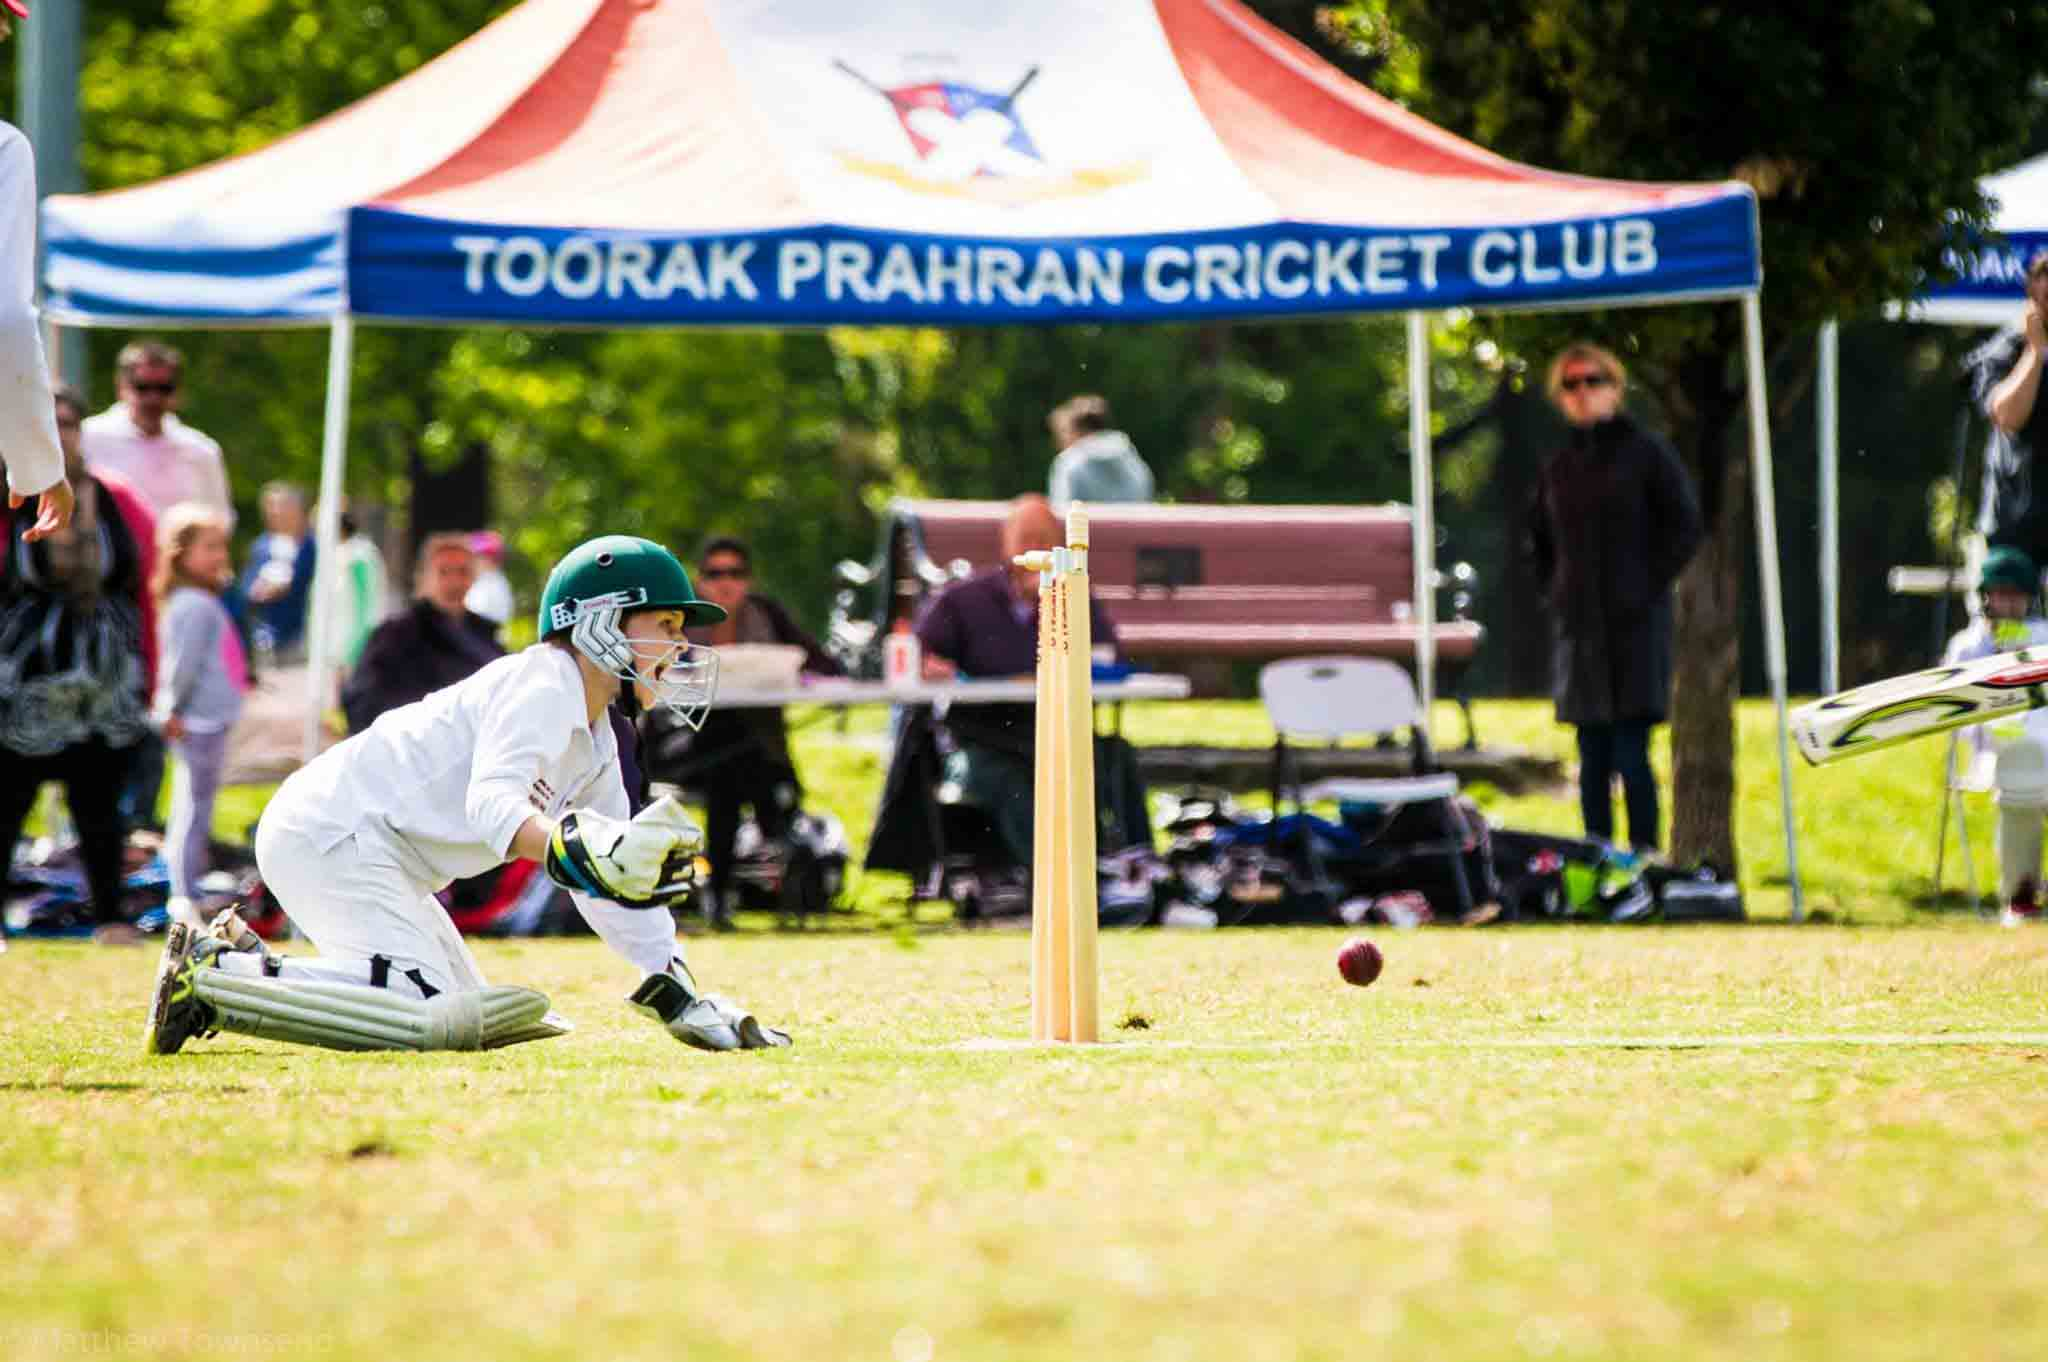 A boy kneeling on the ground playing cricket